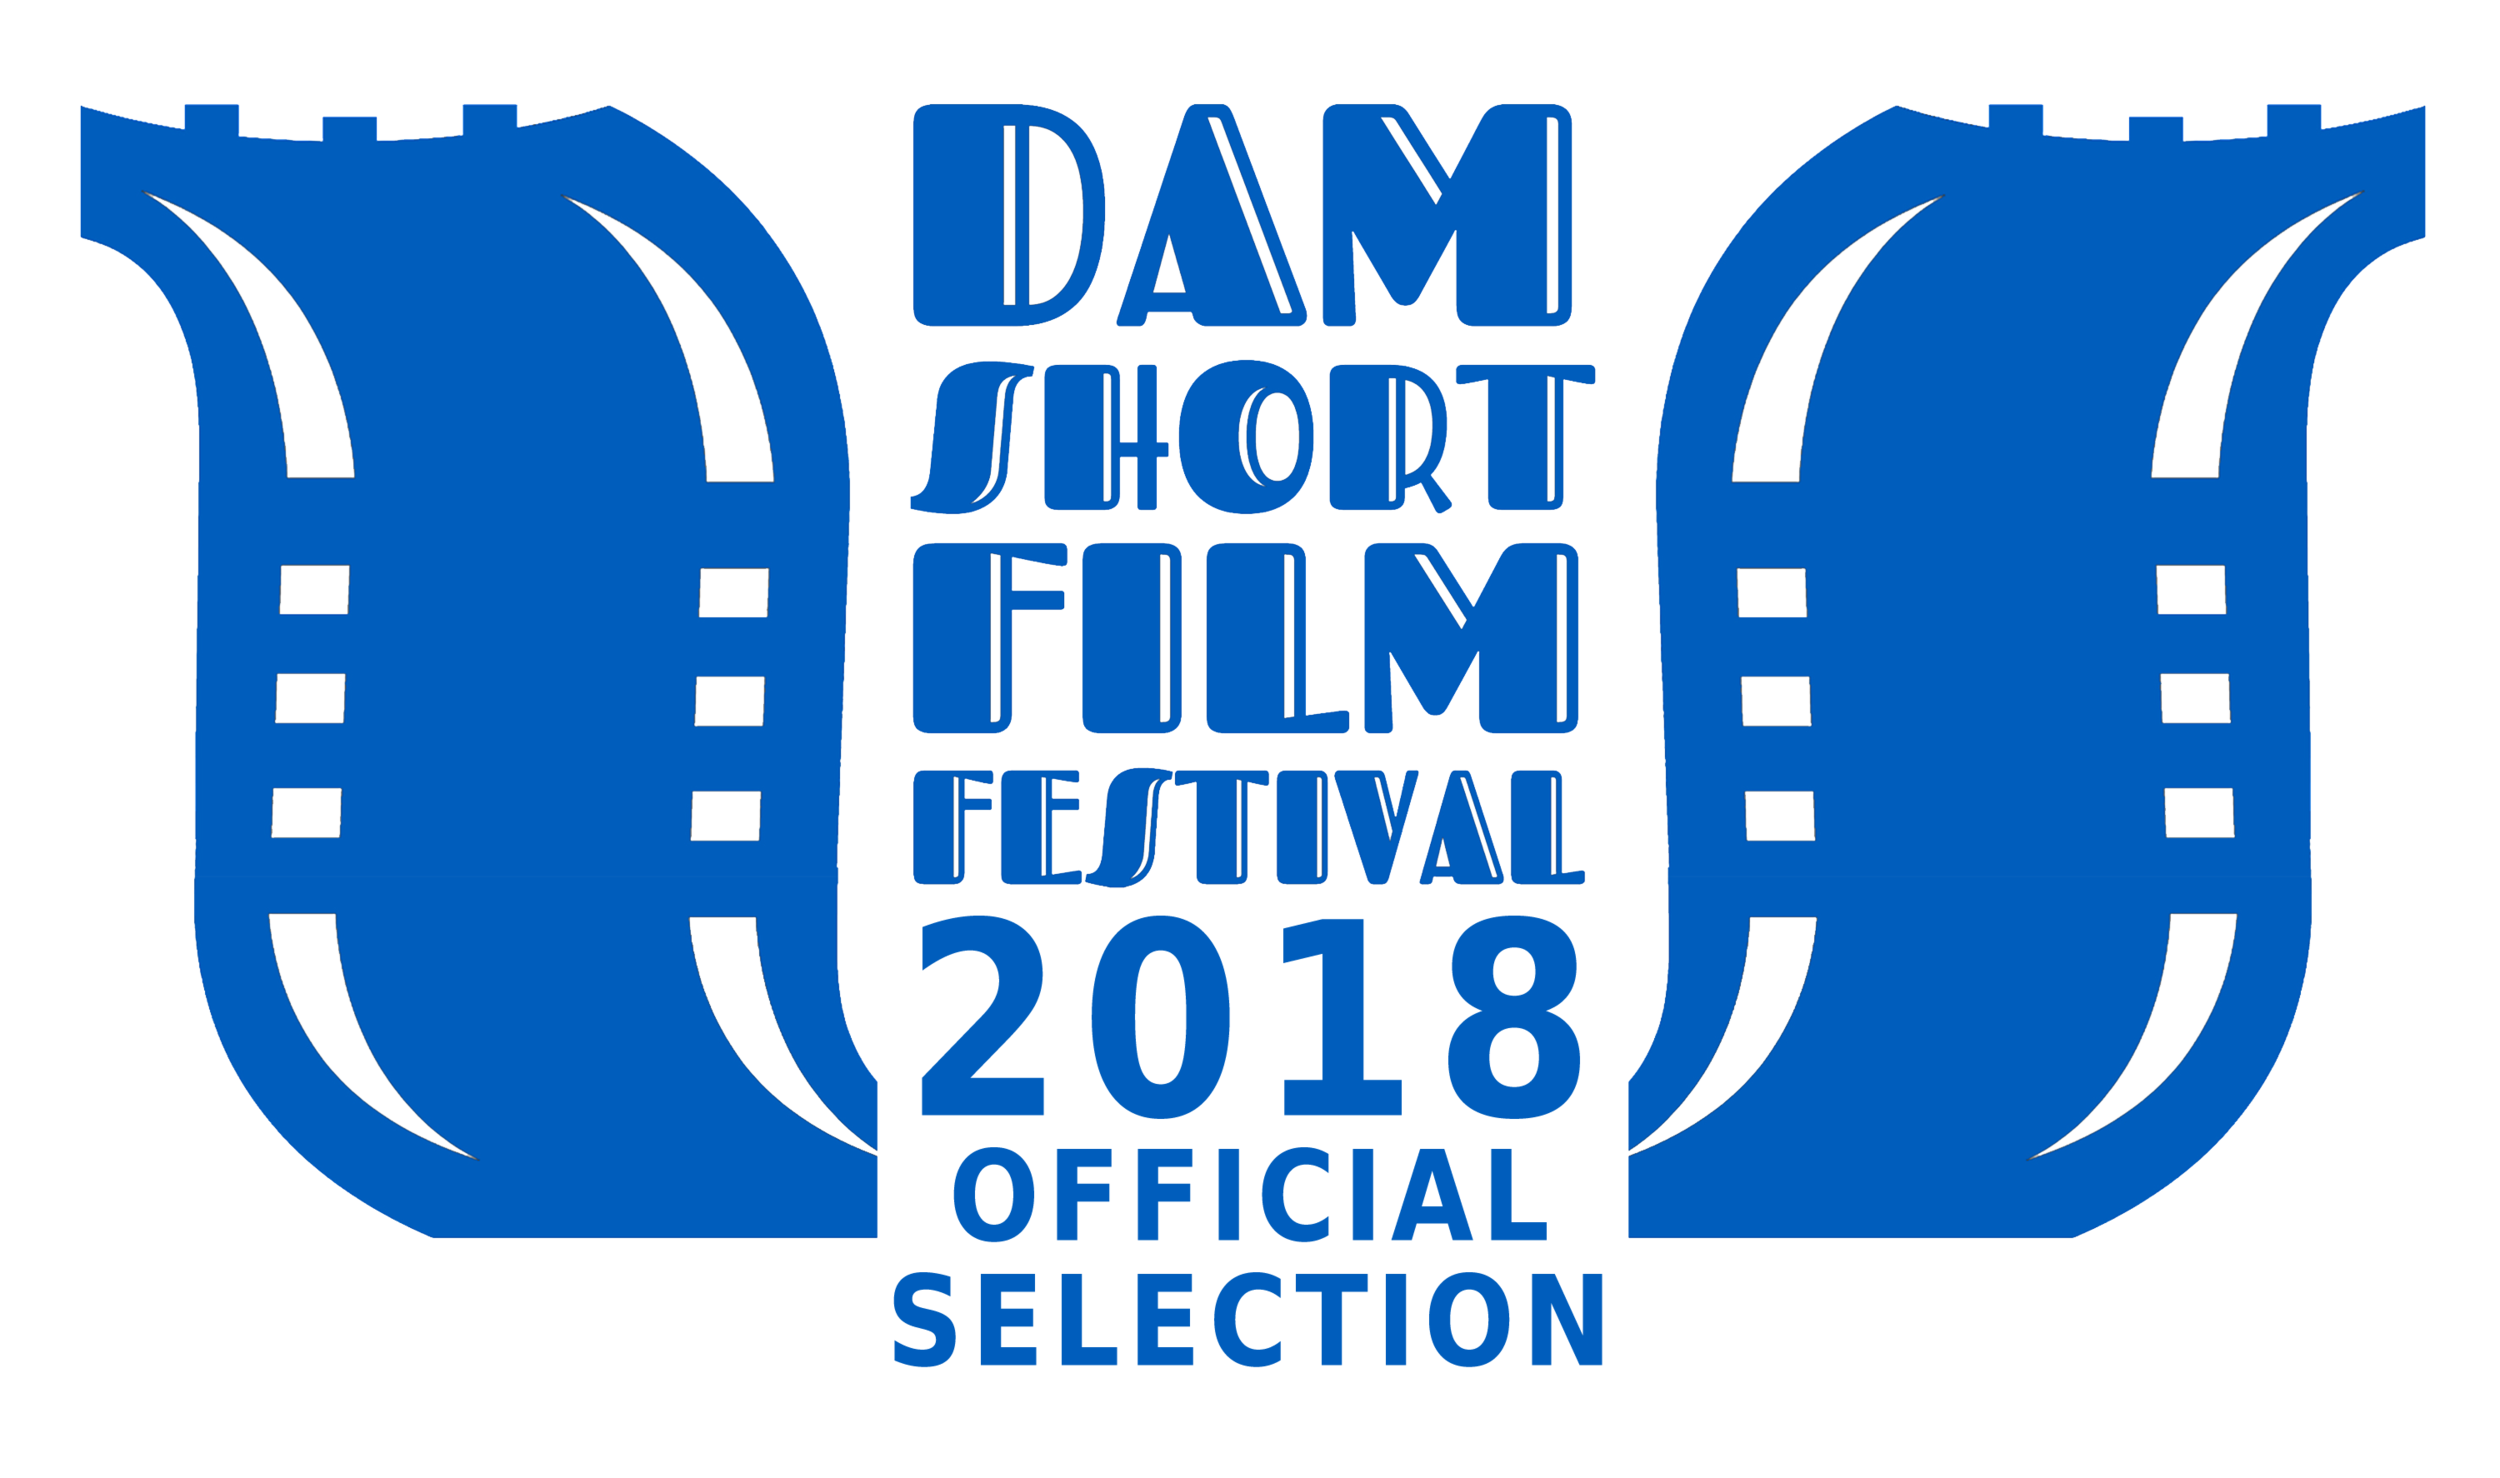 Dam Short 2018 film festival laurels My Lethal Weapon